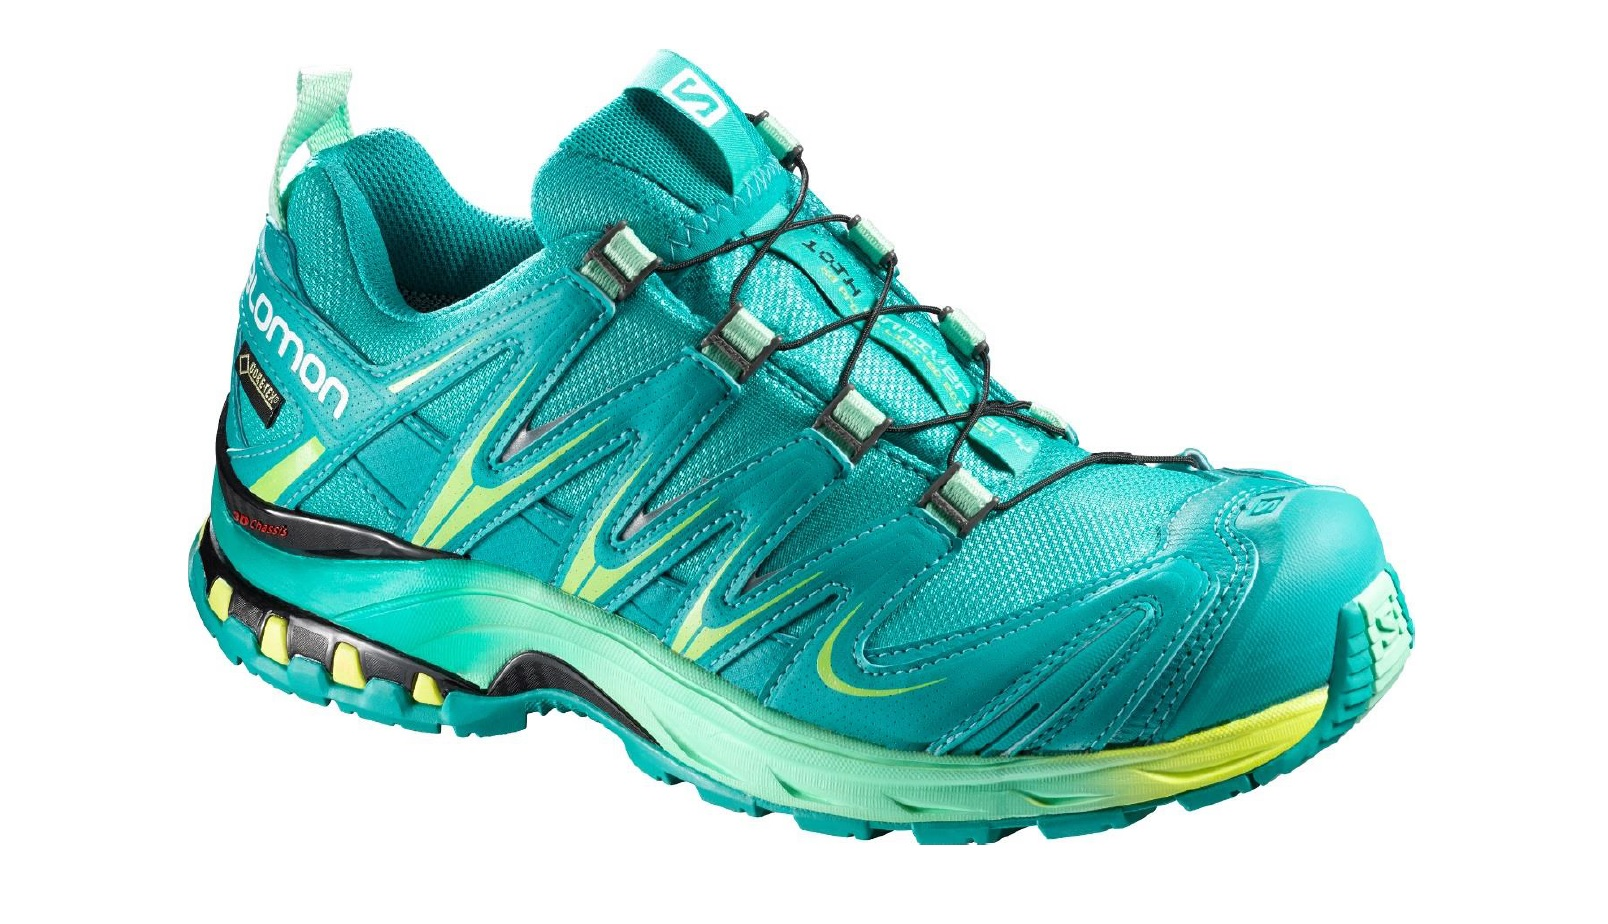 Salomon XA PRO 3D GTX® W 10-YR LTD ED TEAL